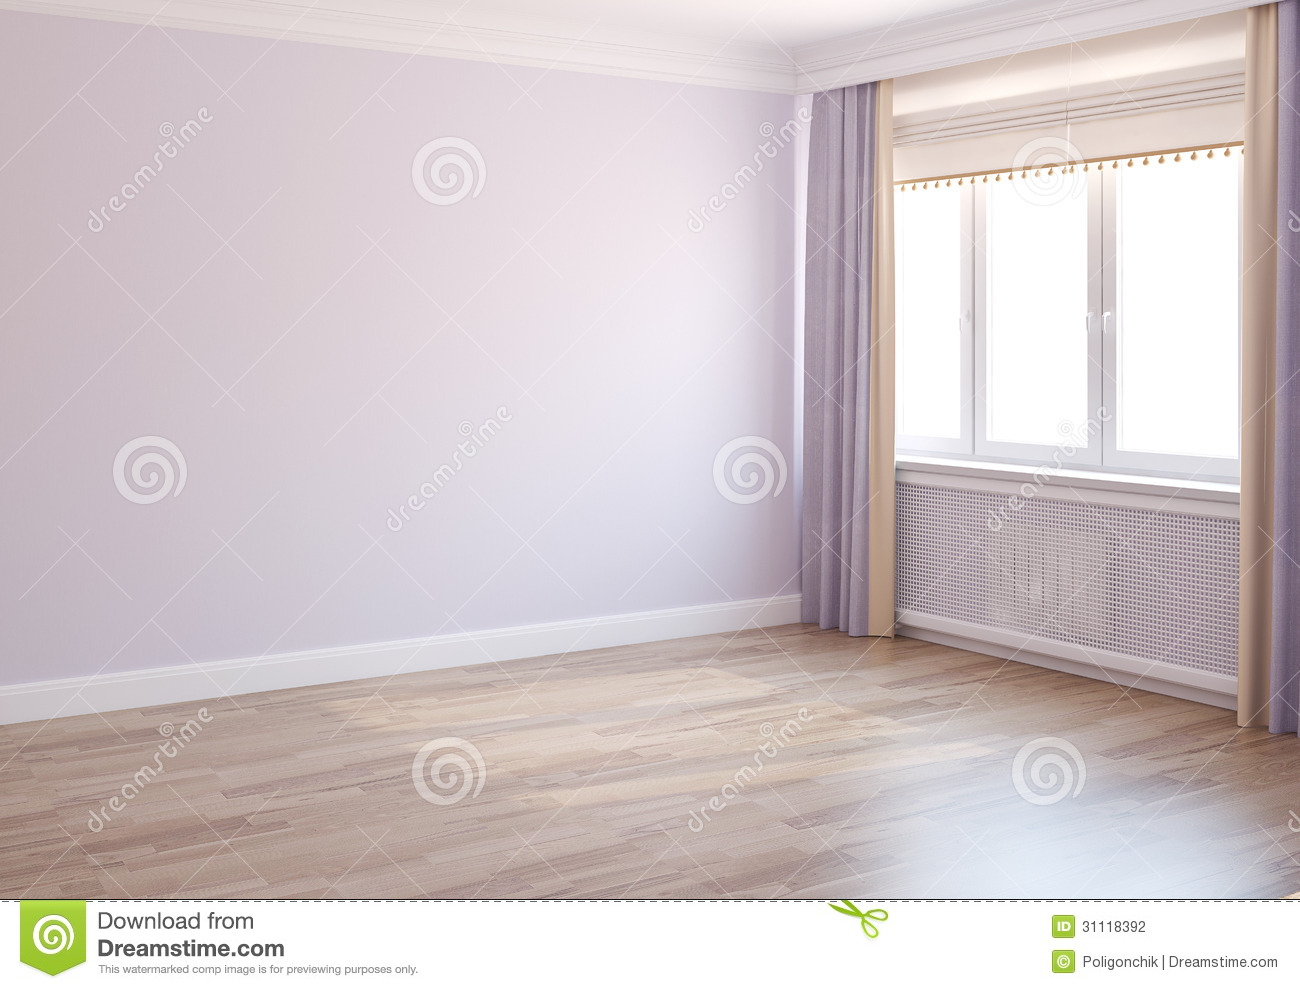 Stock Photography Empty Room Interior Window D Render Image31118392 on Apartment 2 Bedroom House Plans